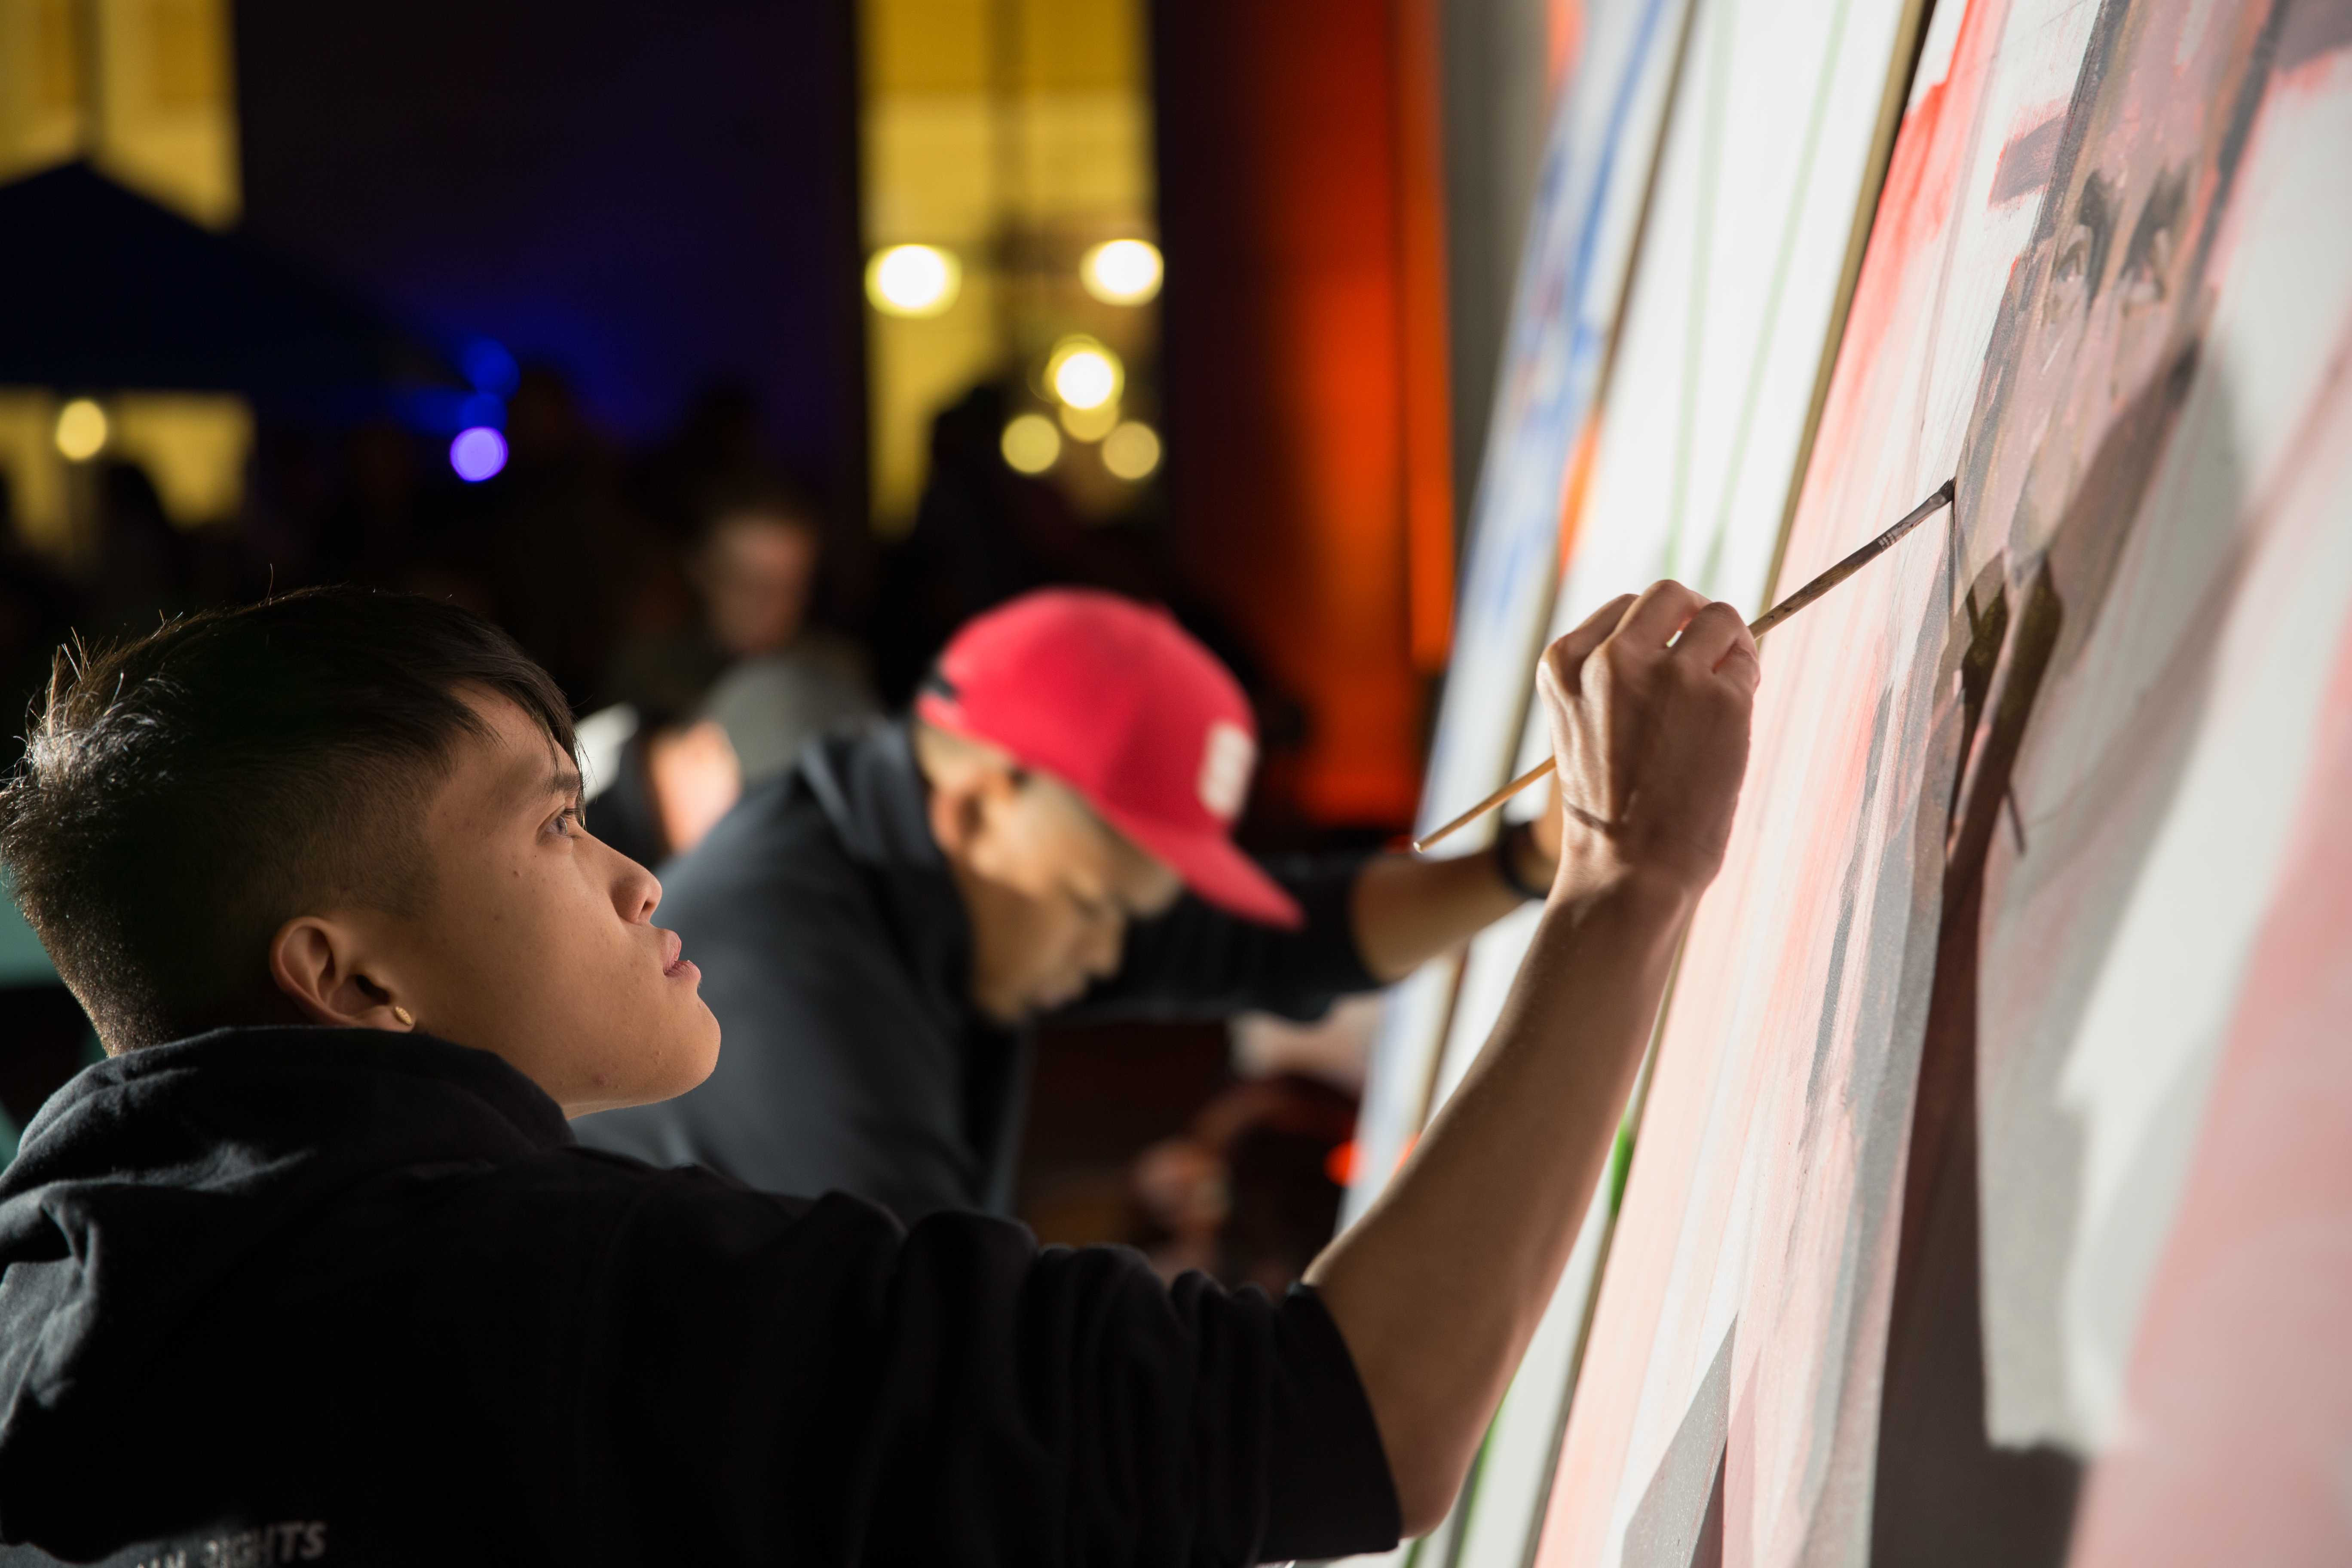 Ben Yu paints a portrait of Larry Itliong in the San Francisco Mint at Undiscovered SF in San Francisco on Friday, Oct. 20, 2017. (Travis Wesley/Golden Gate Xpress)